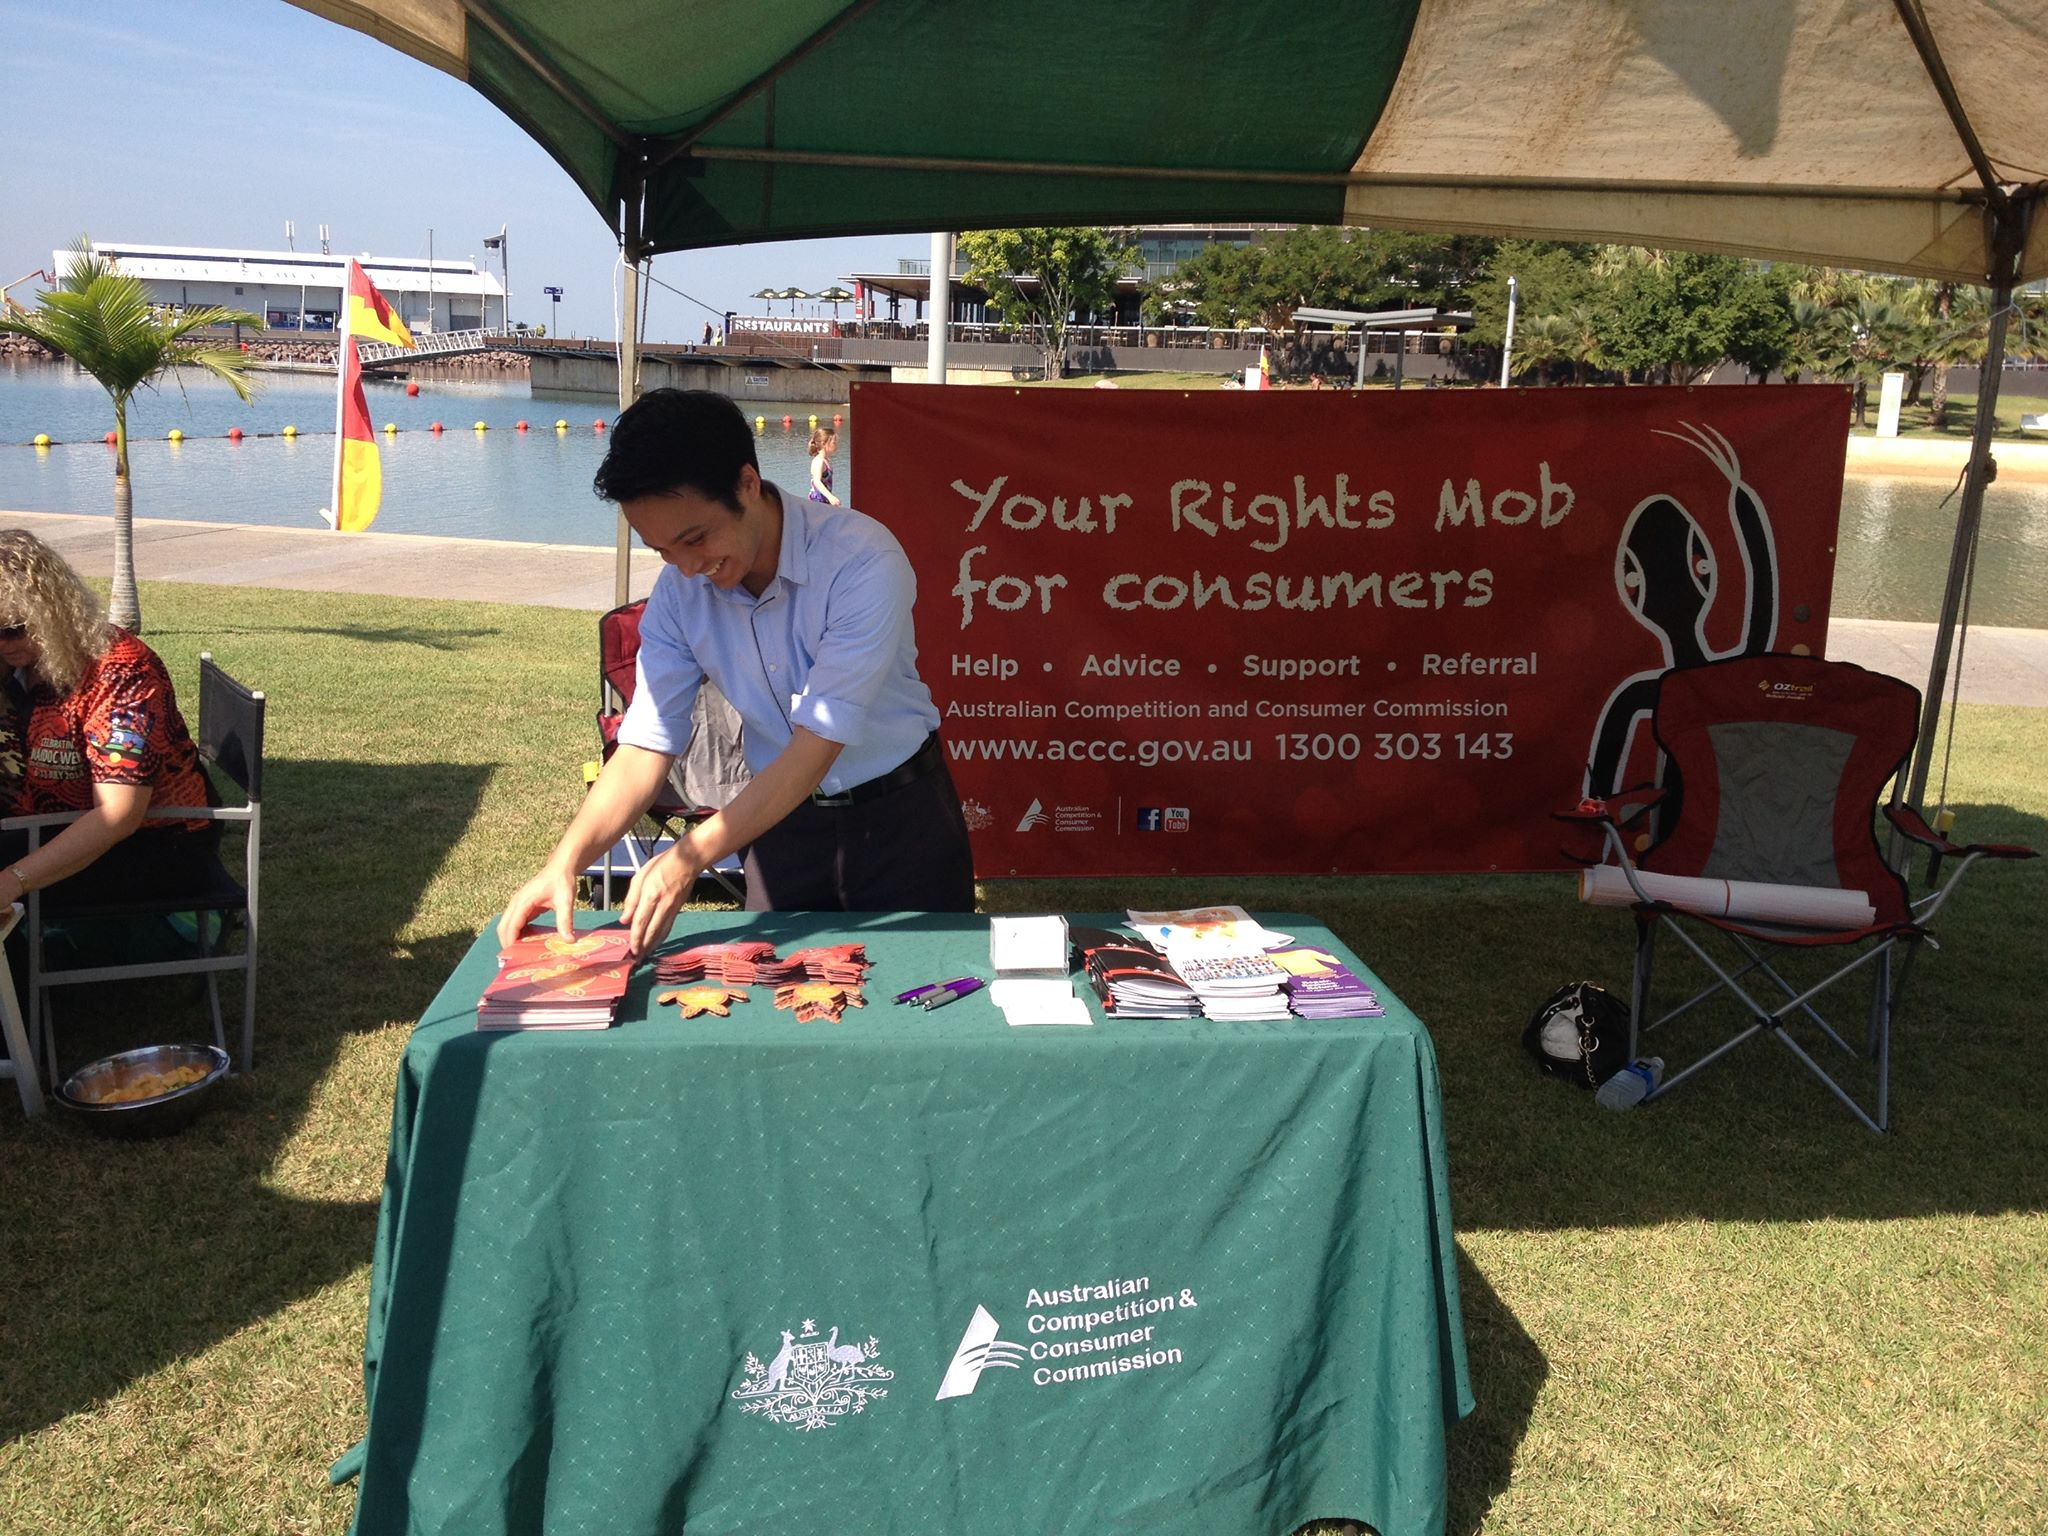 ACCC opens 'Your Rights Mob' Facebook page